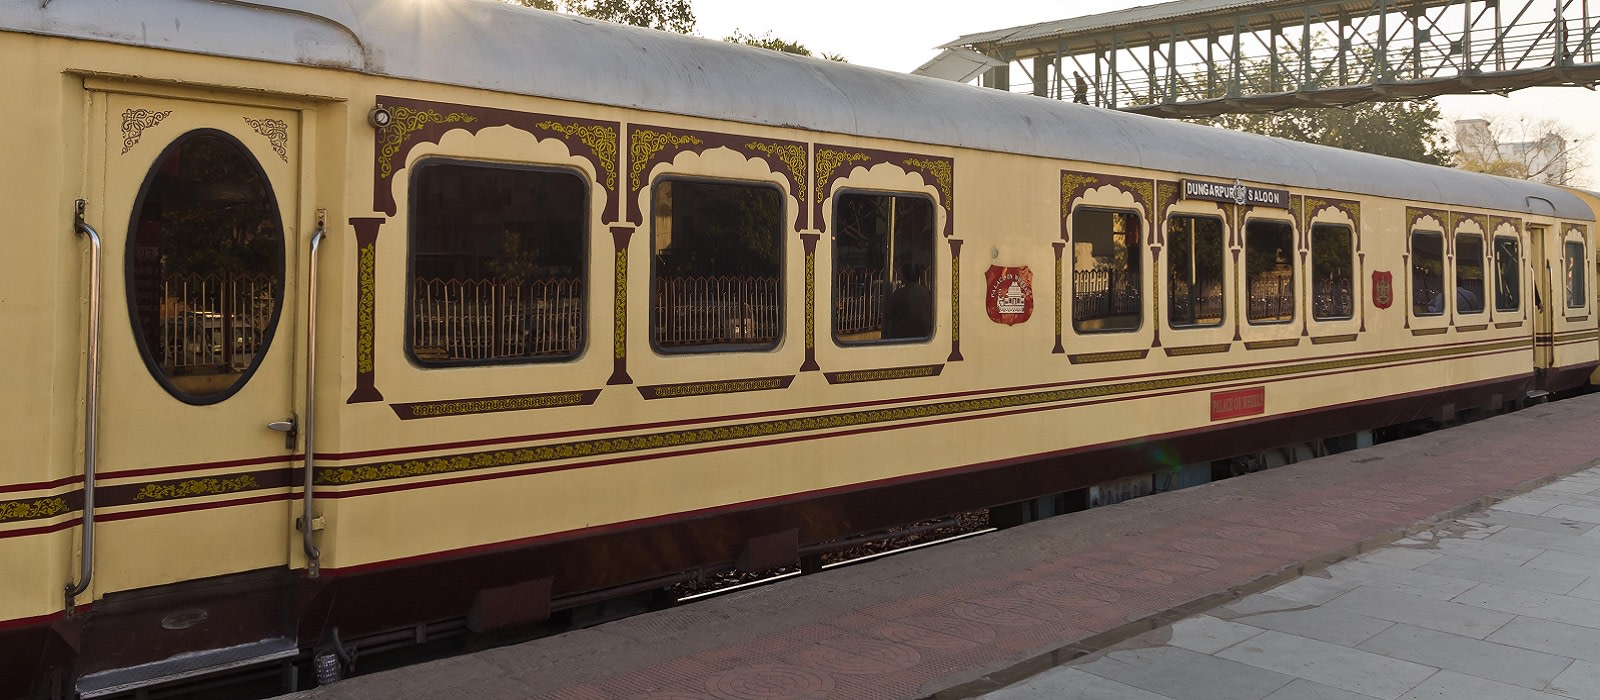 Hotel Palace on wheels Nordindien